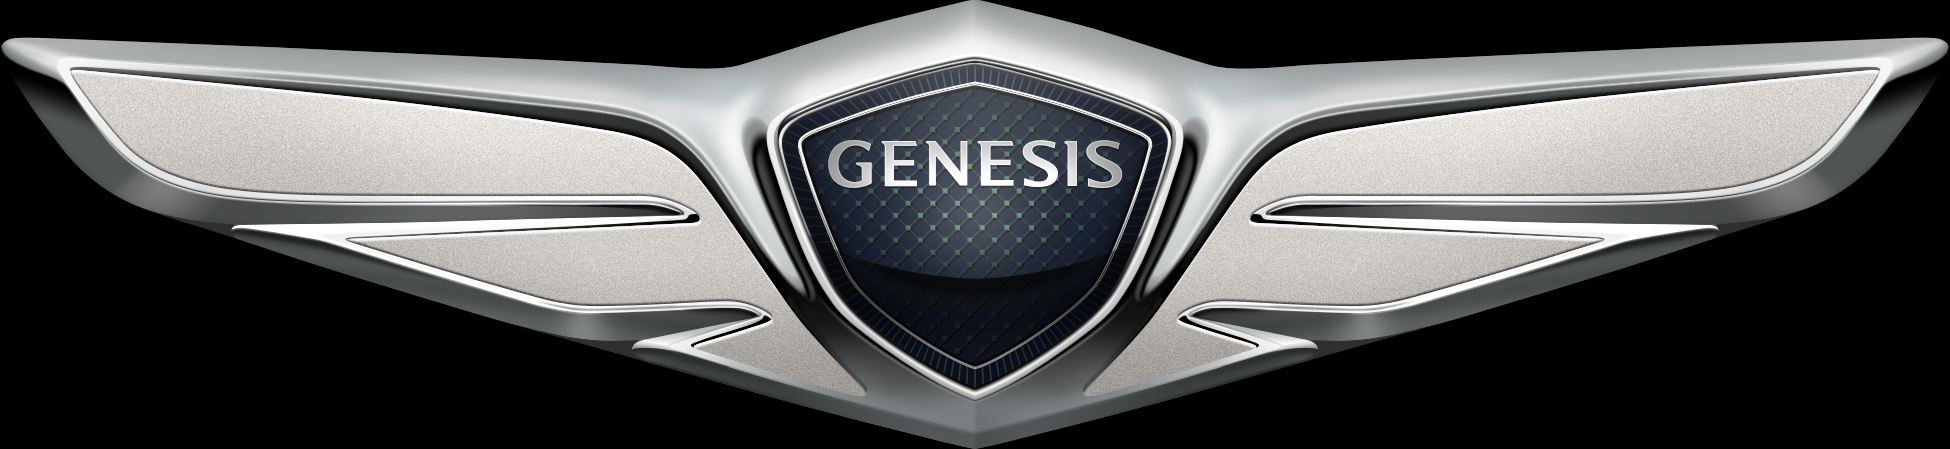 finally hyundai launched genesis brand the korean car blog. Black Bedroom Furniture Sets. Home Design Ideas